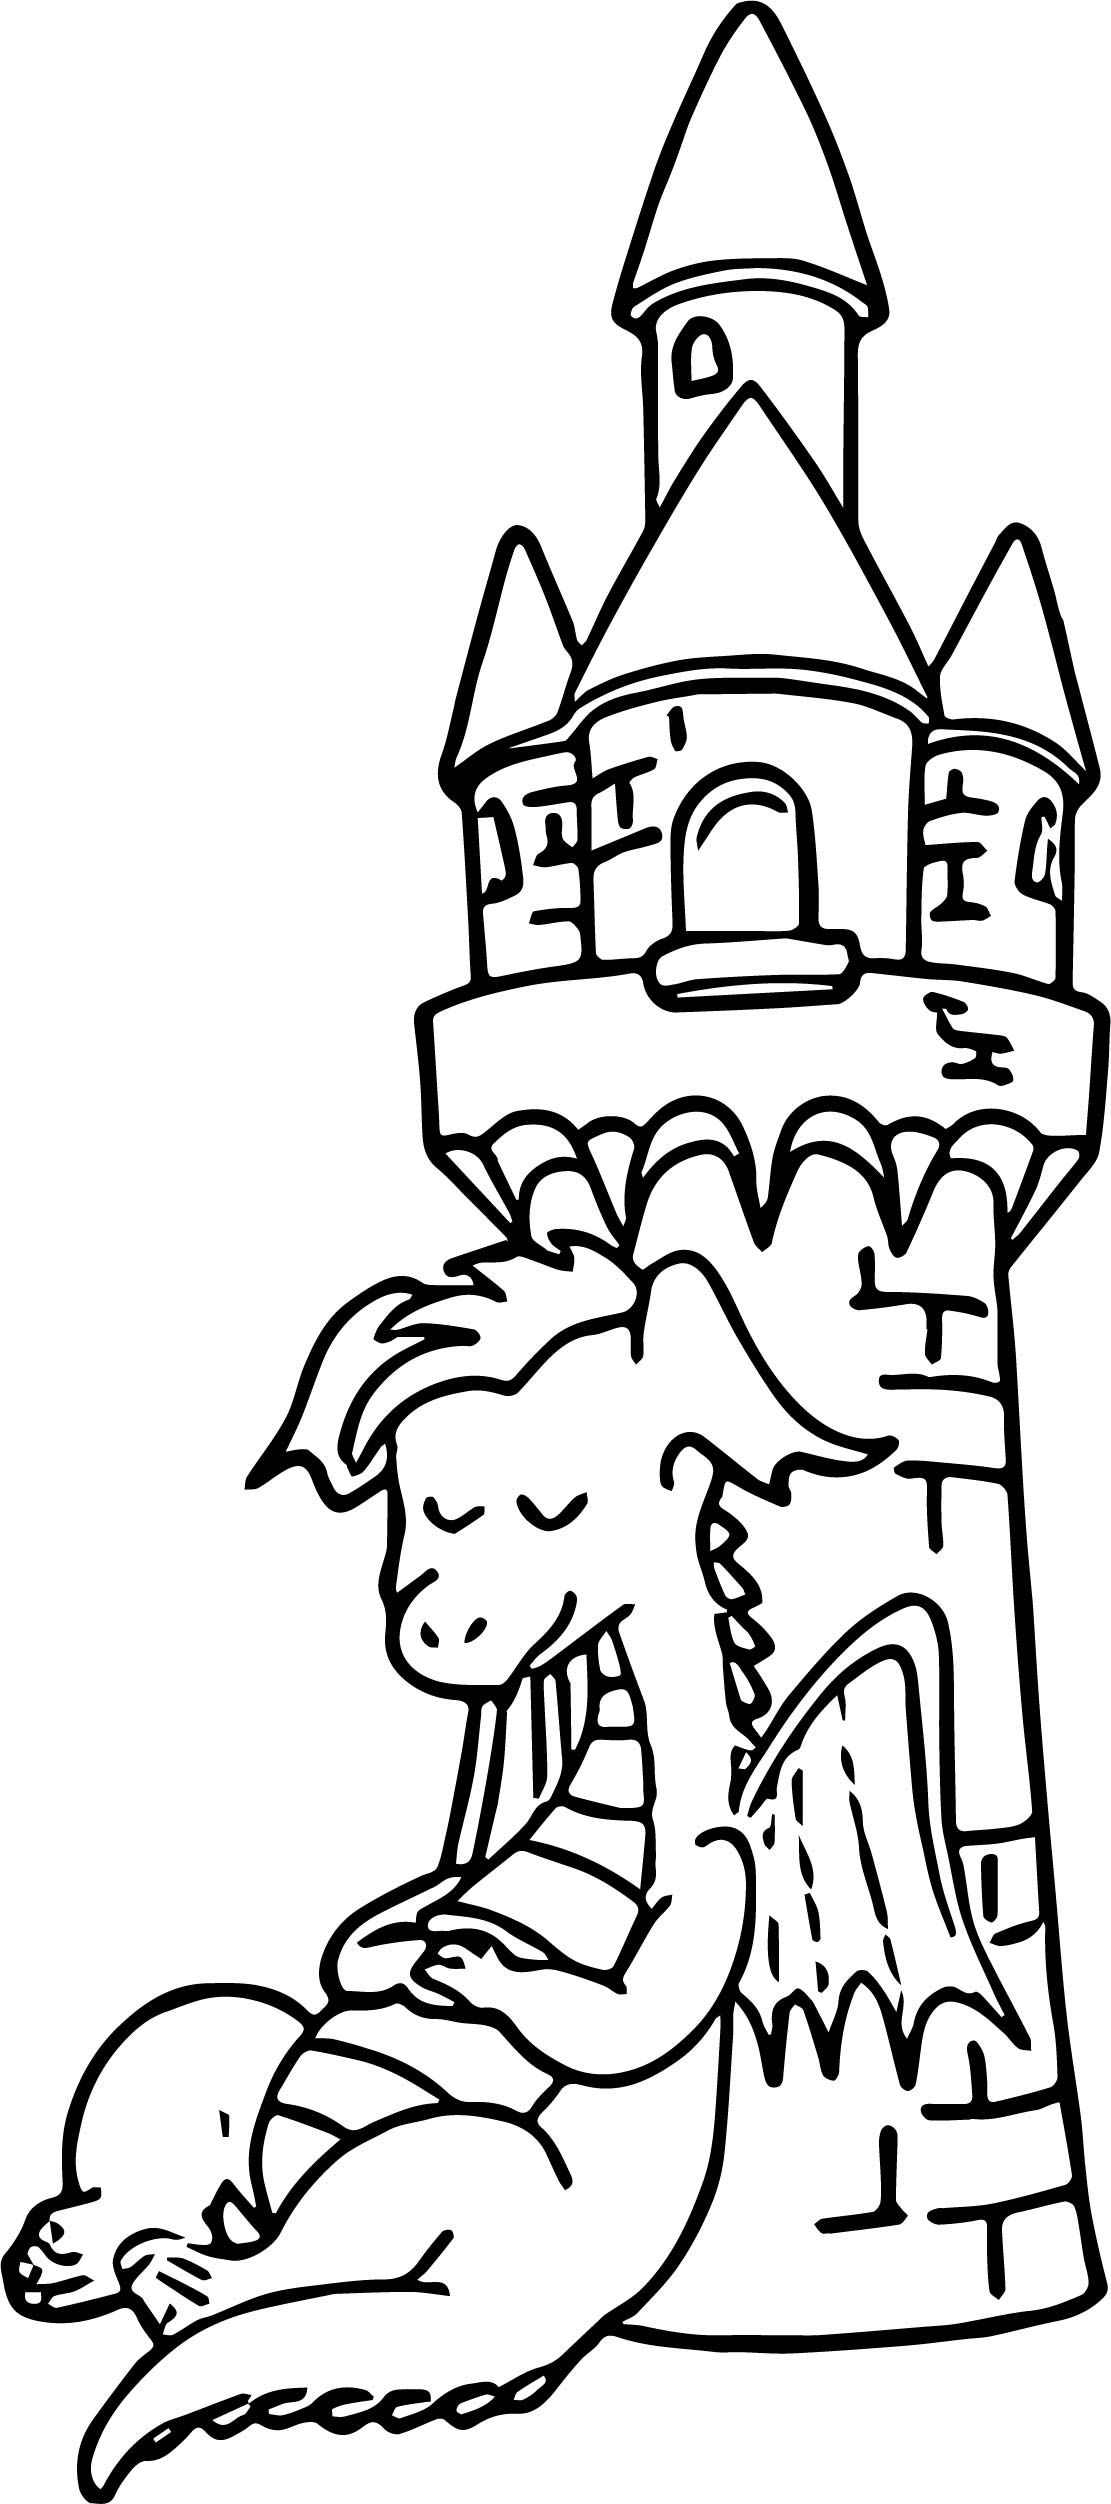 Awesome Sleeping Castle Dragon Coloring Page Dragon Coloring Page Coloring Pages Bible Coloring Pages